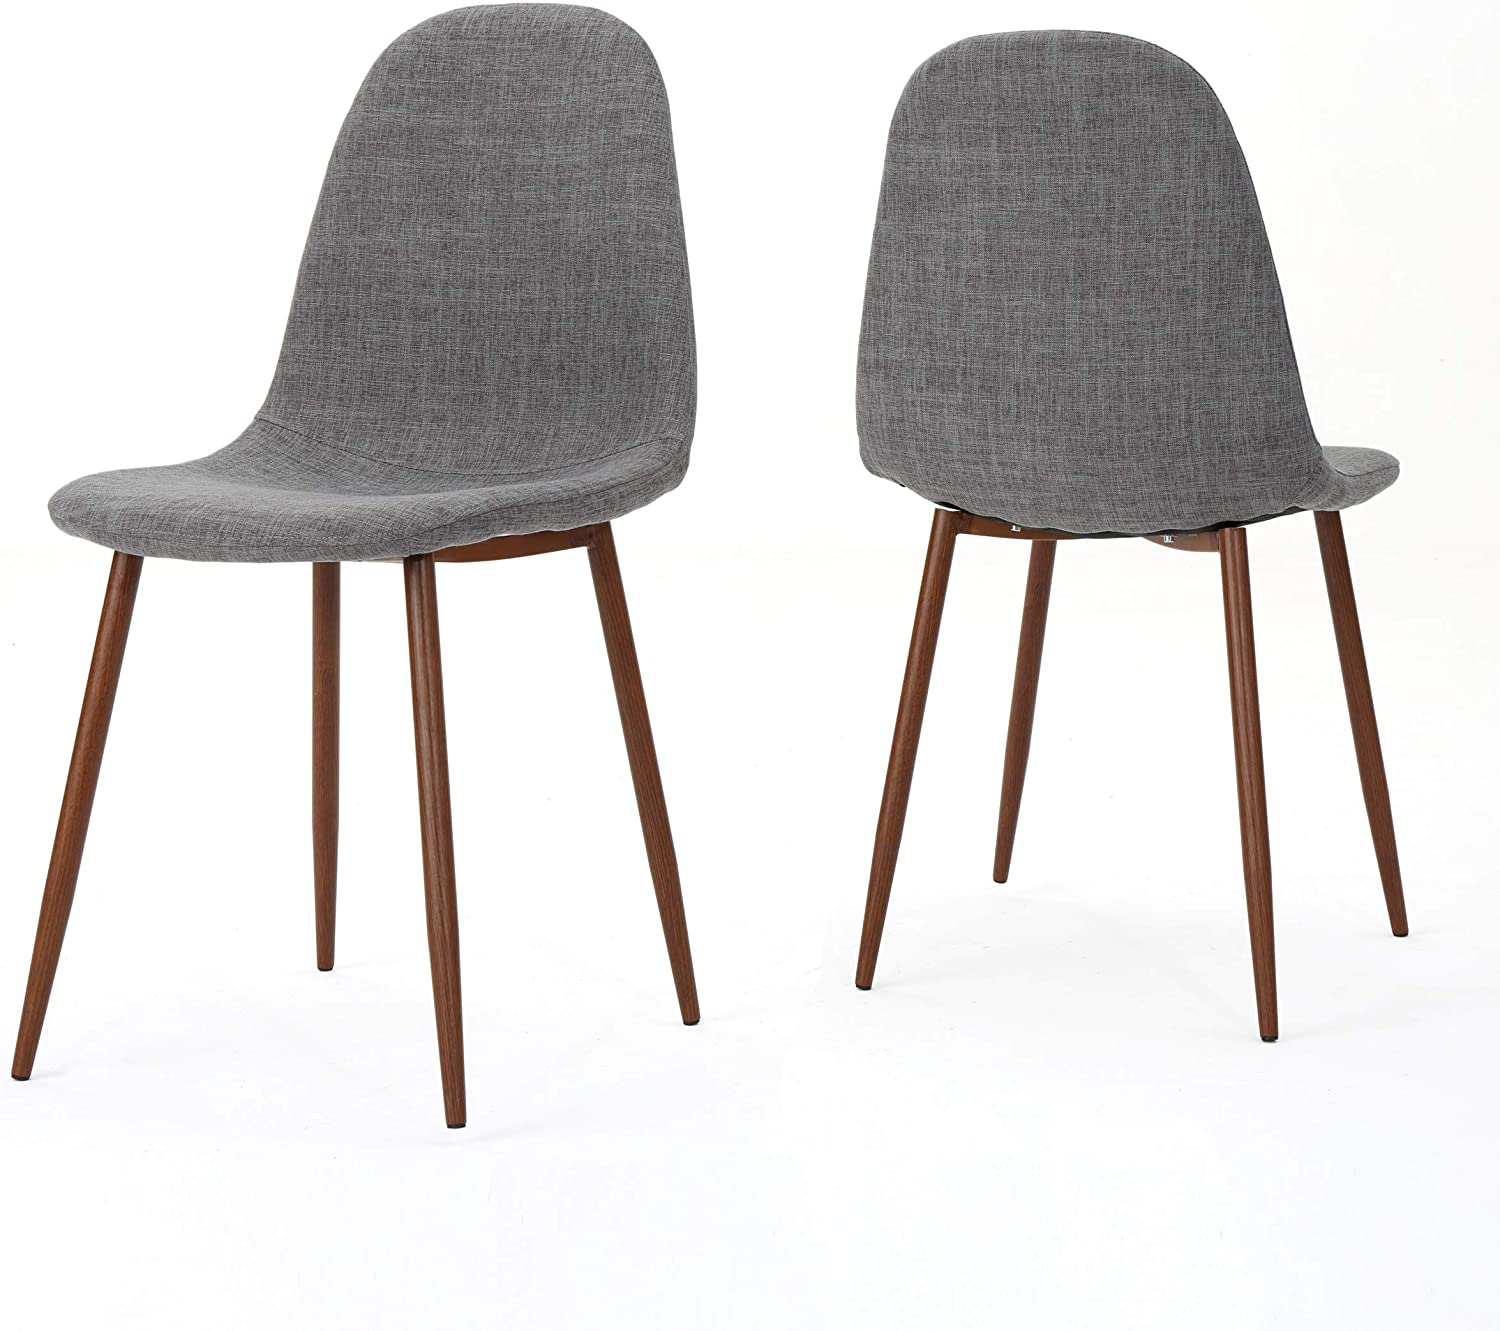 Amazon Com Christopher Knight Home 301730 Raina Mid Century Modern Fabric Dining Chairs With Wood Finished Metal Legs 2 Pcs Set Light Grey Dark Brown Chairs